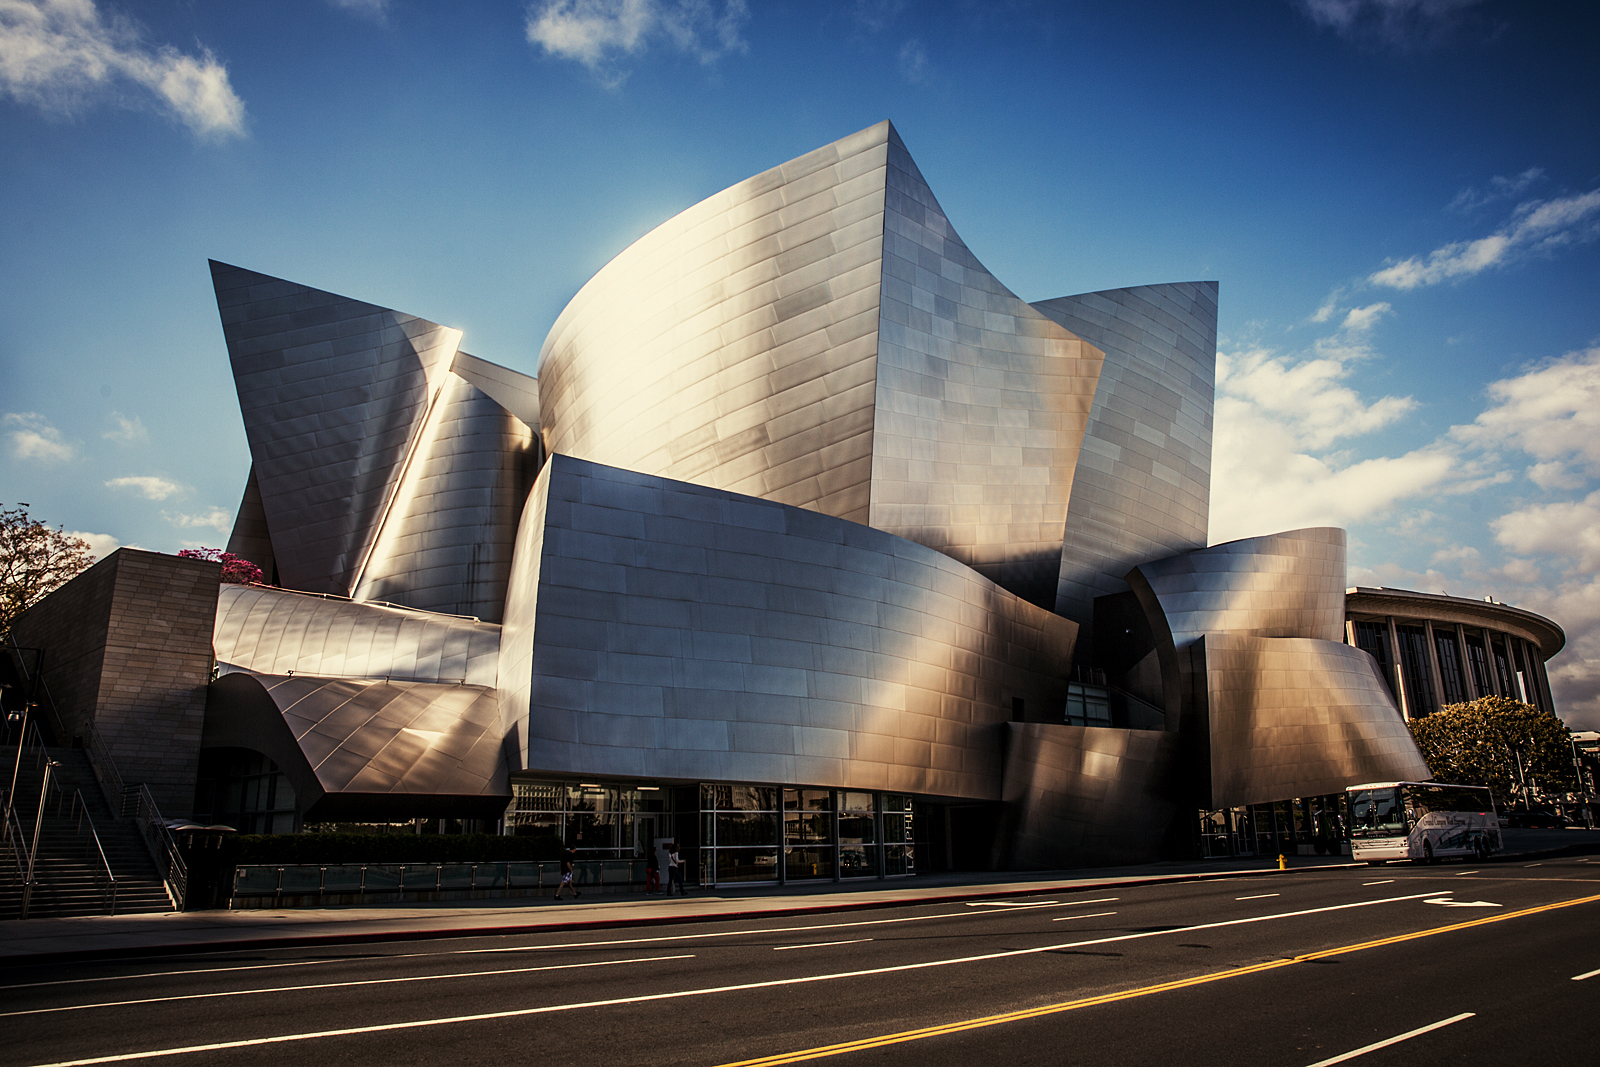 bolfo_0008s_0010_Disney Hall LA